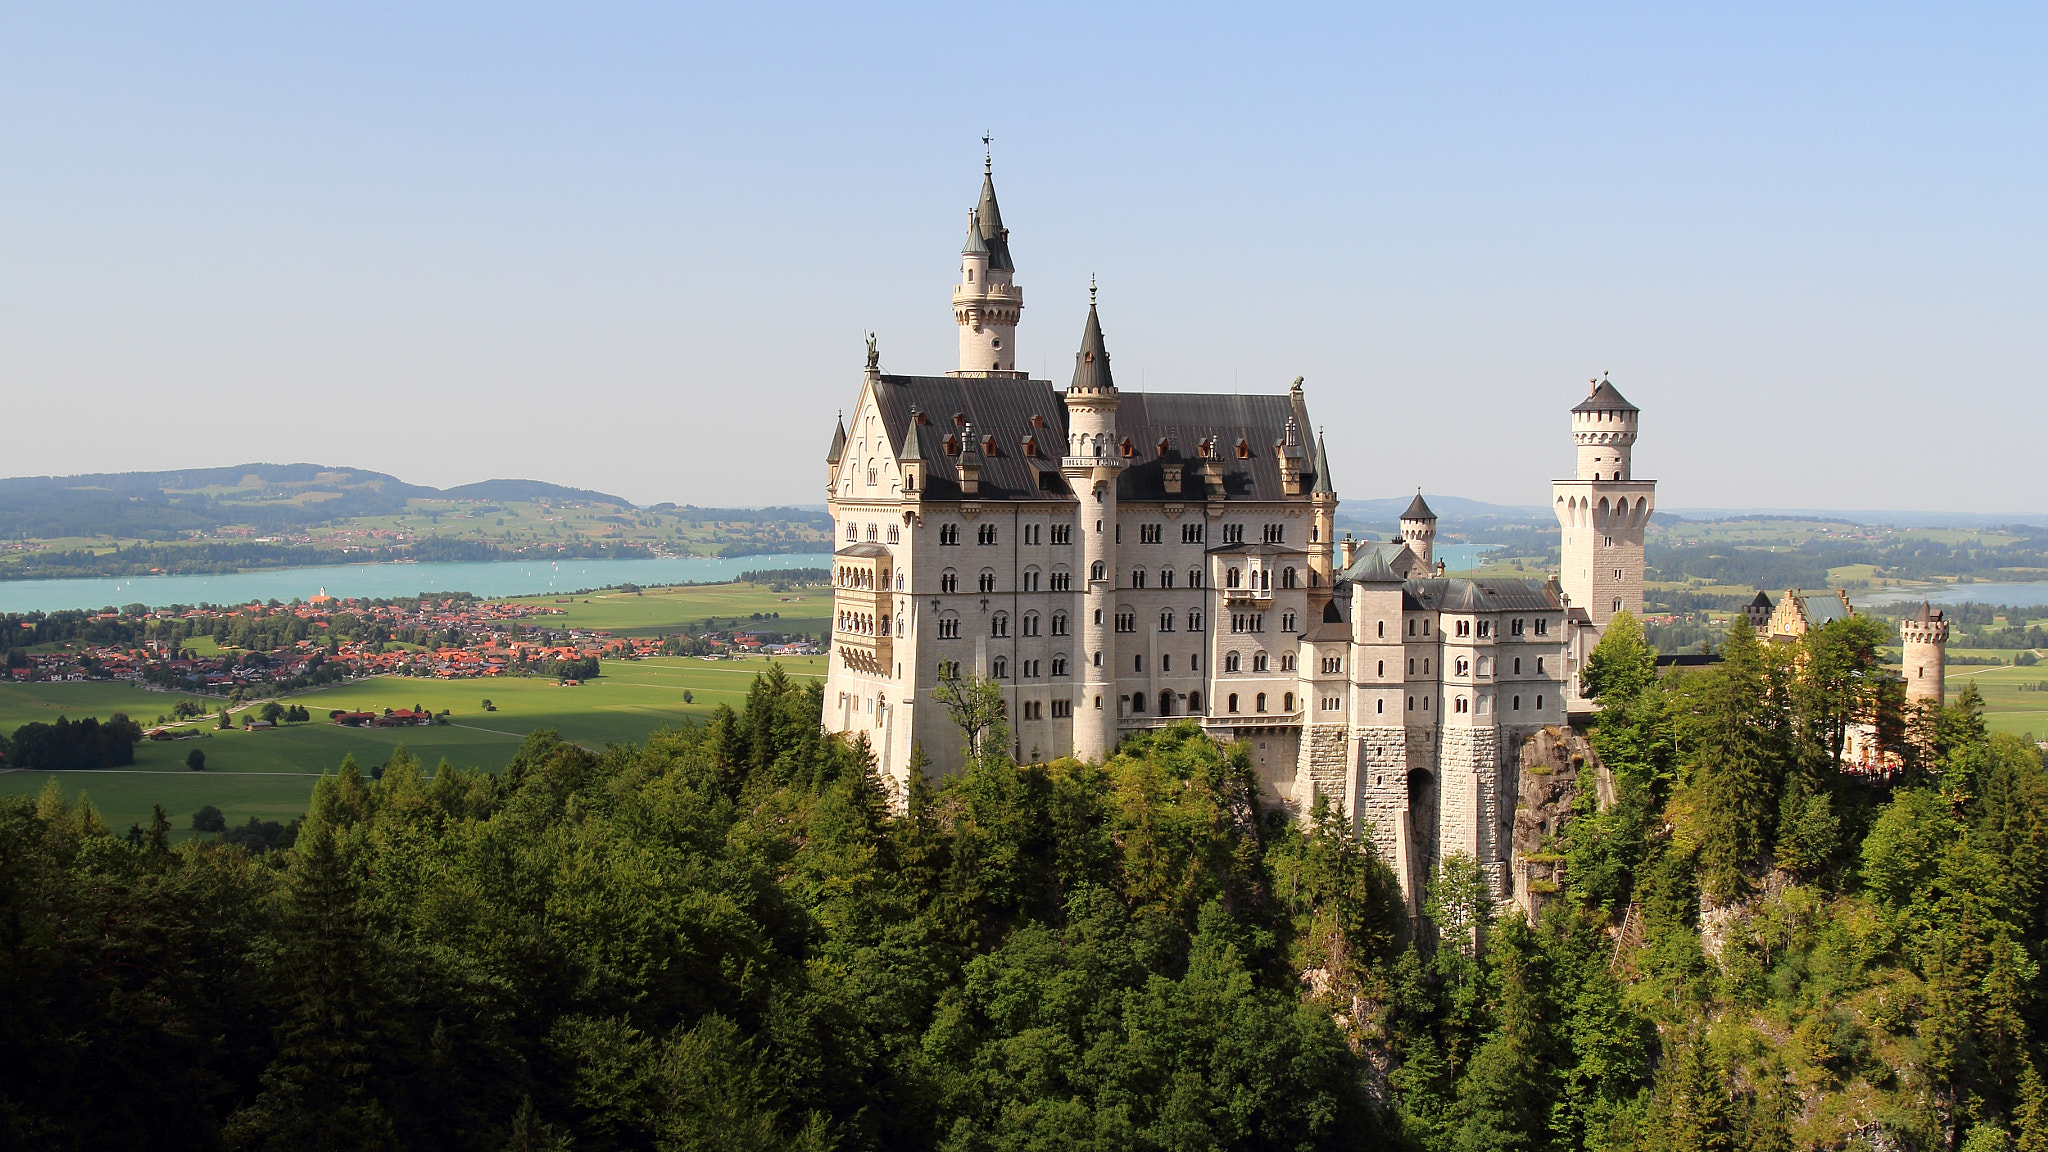 Photograph Neuschwanstein by askypulk on 500px